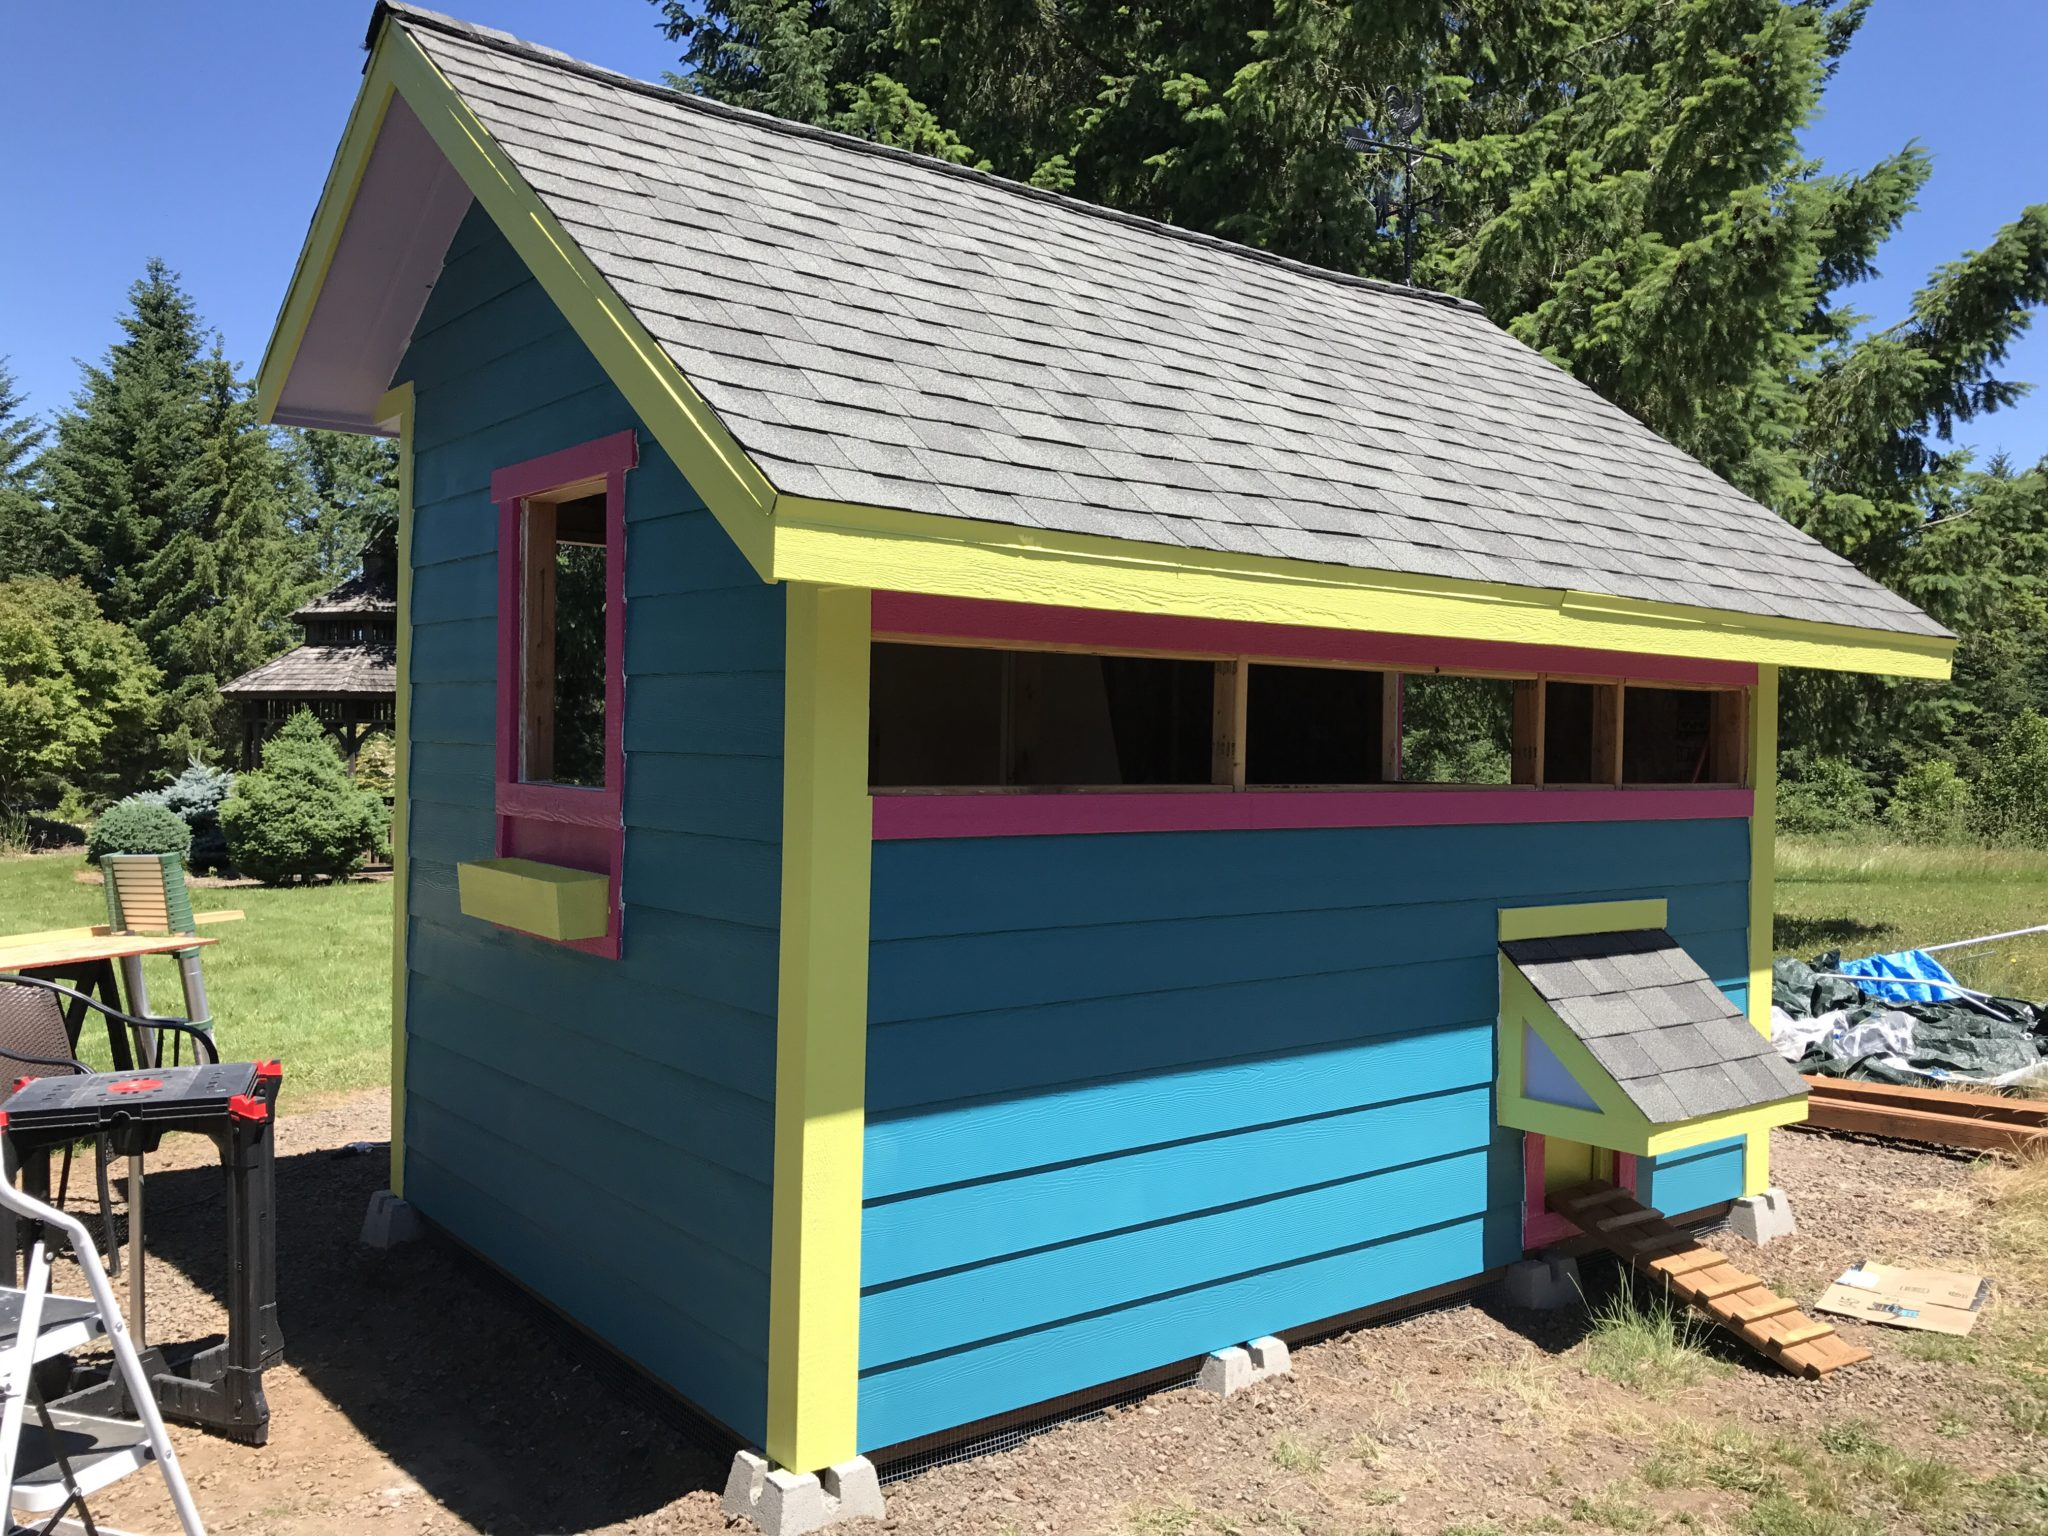 Chicken coop painting siding & installing windows – Yellow Cottage